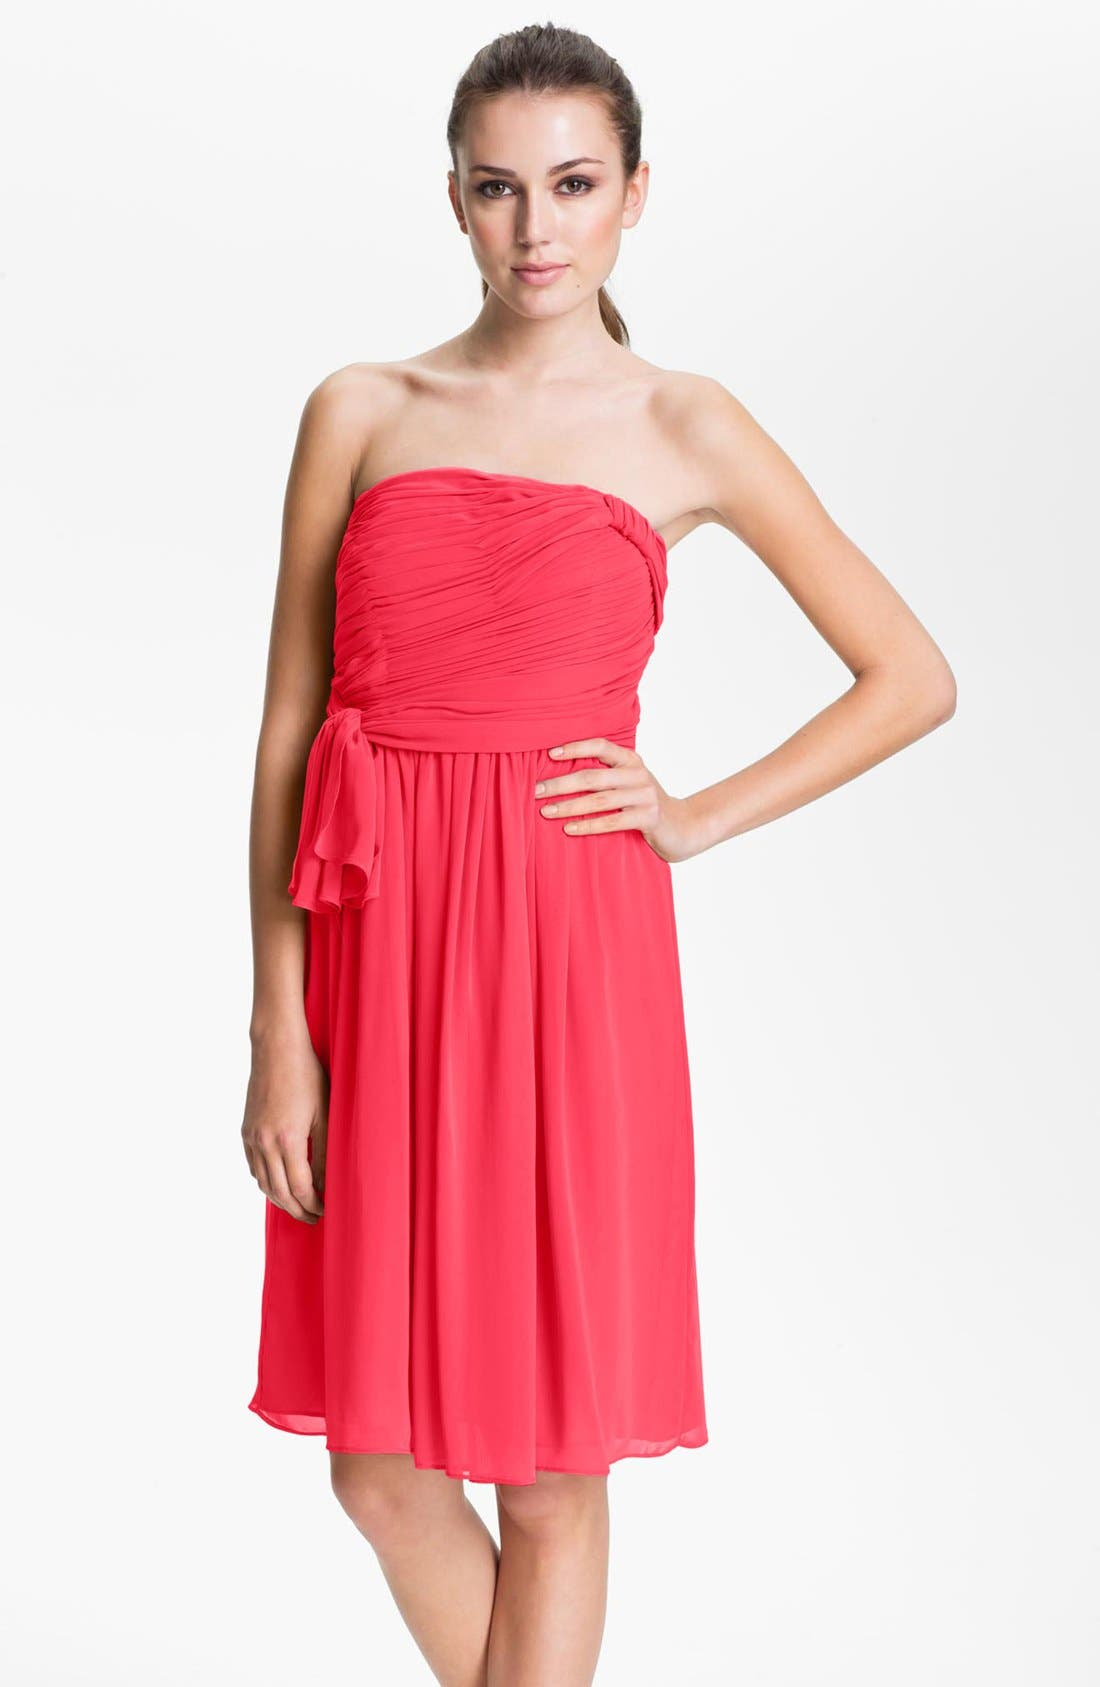 Main Image - Calvin Klein Strapless Ruched Chiffon Dress